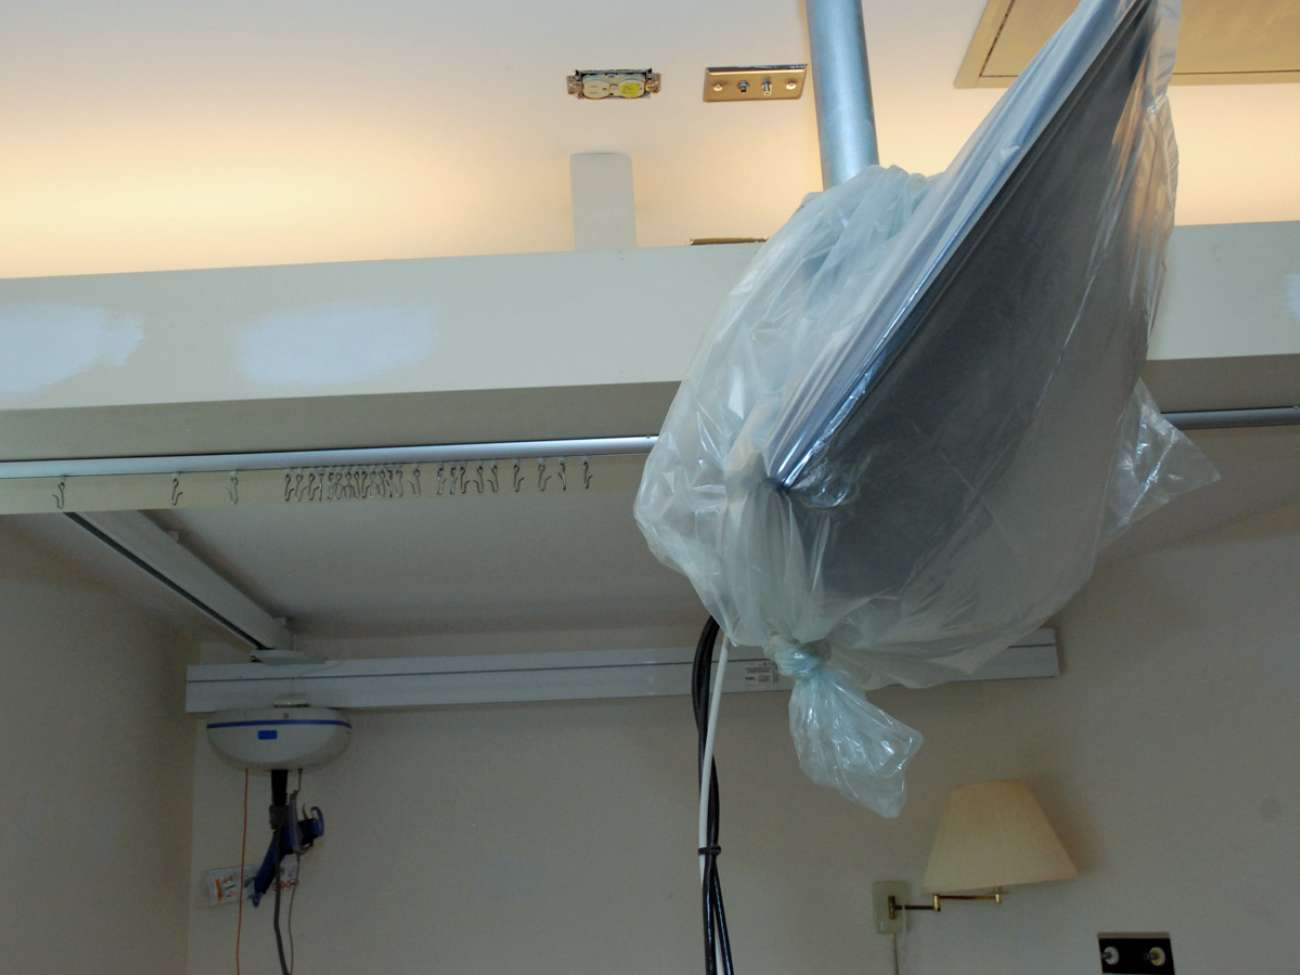 As GRH completes health infrastructure renovations, new patient lifts and televisions are being installed.